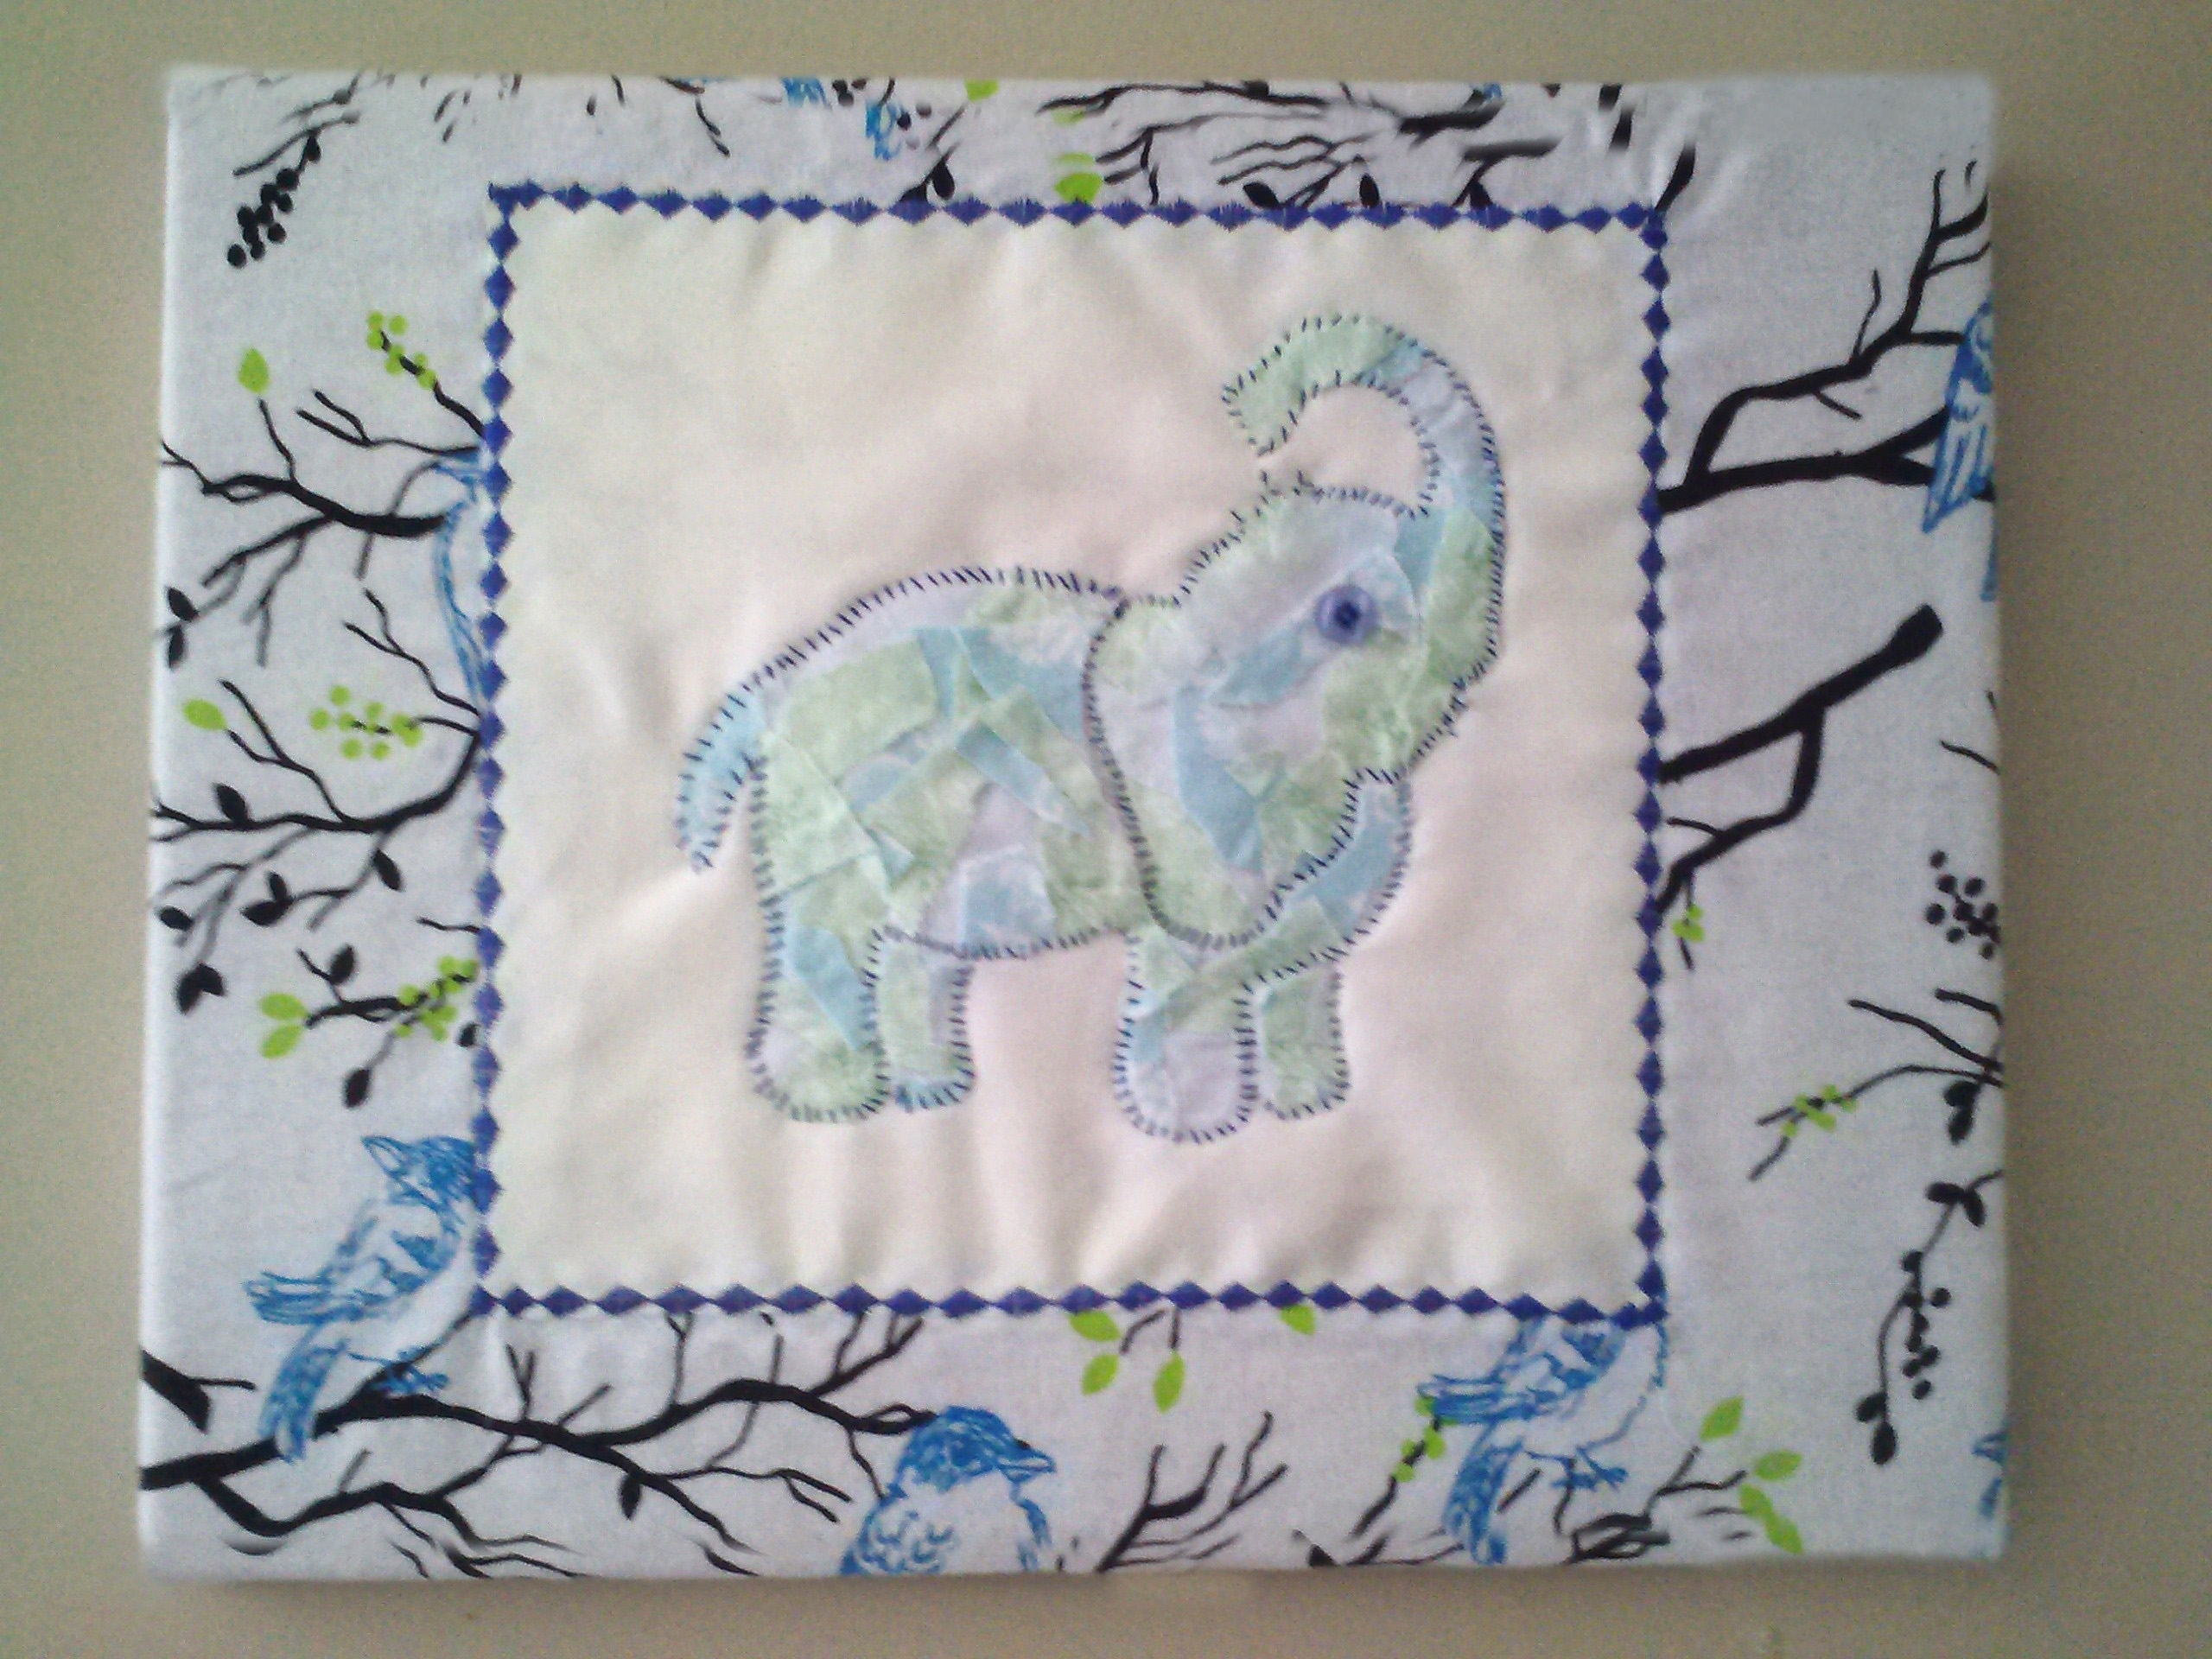 Diy Wall Art For Nursery: Fabric Covered Canvas | Christian Mom Values With Regard To Most Recent Childrens Fabric Wall Art (View 7 of 15)